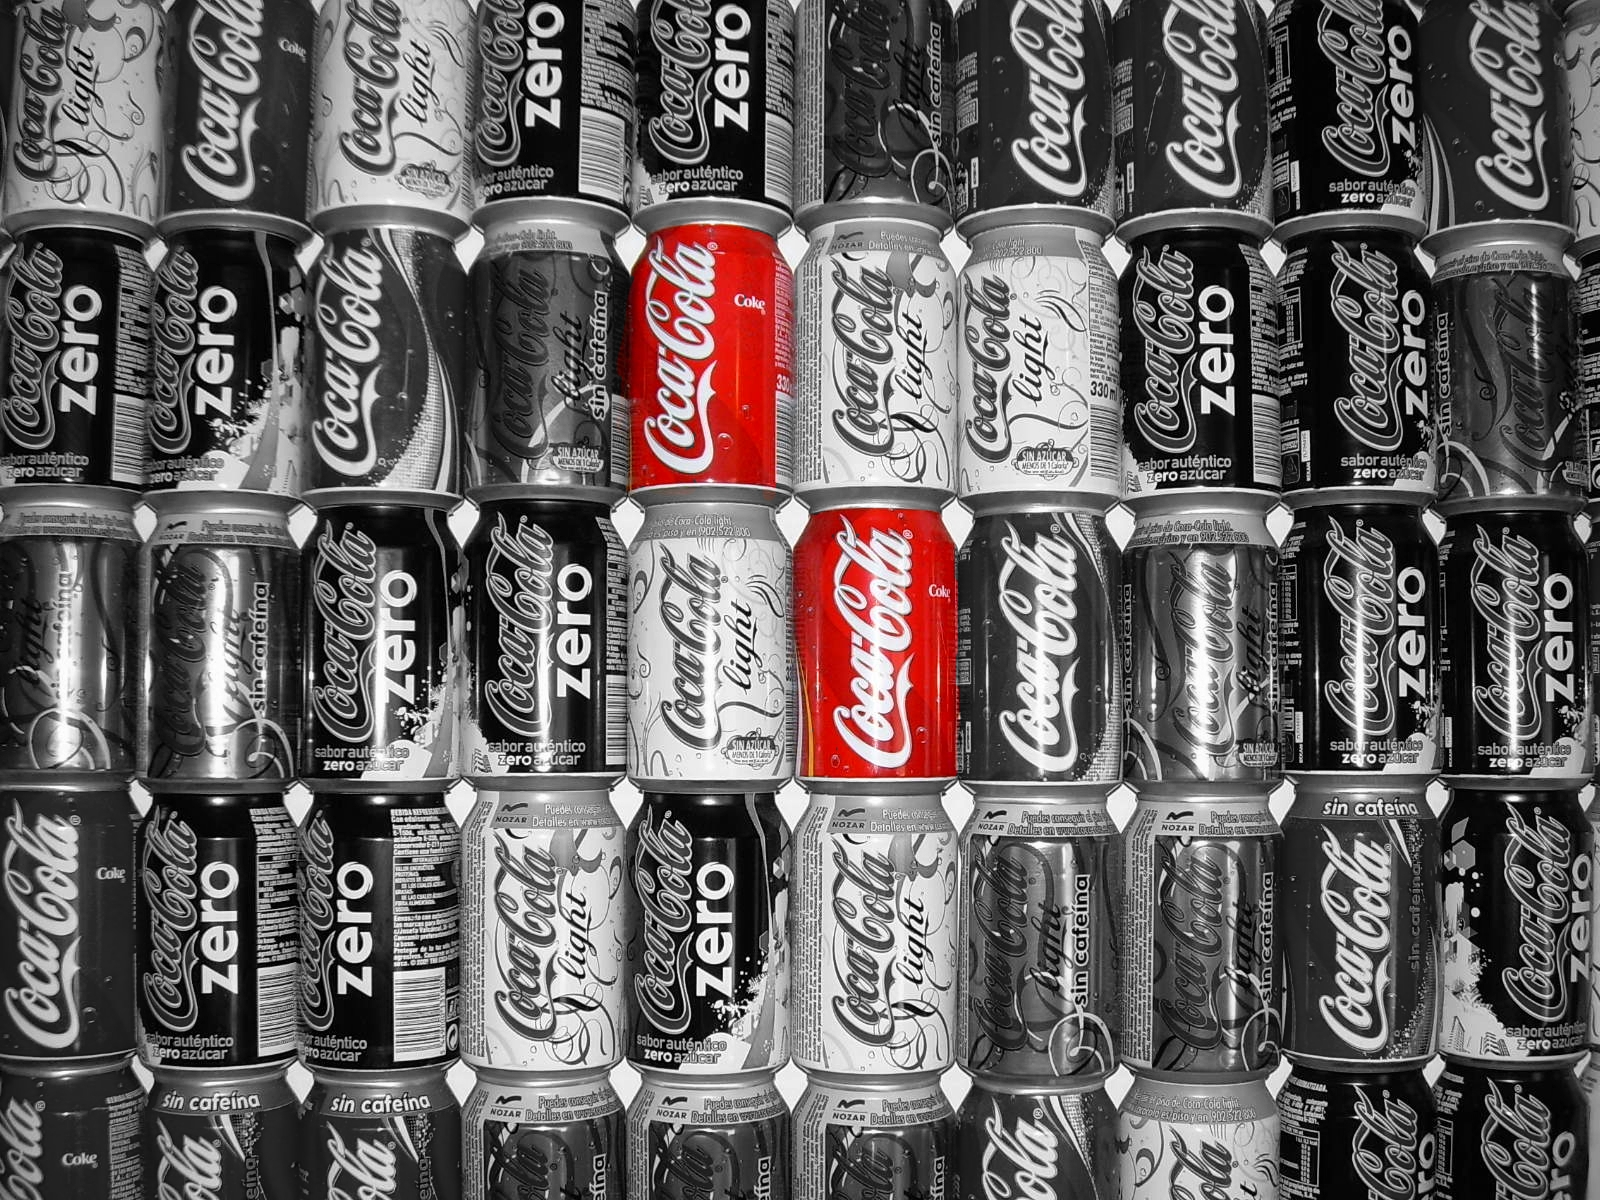 cans...